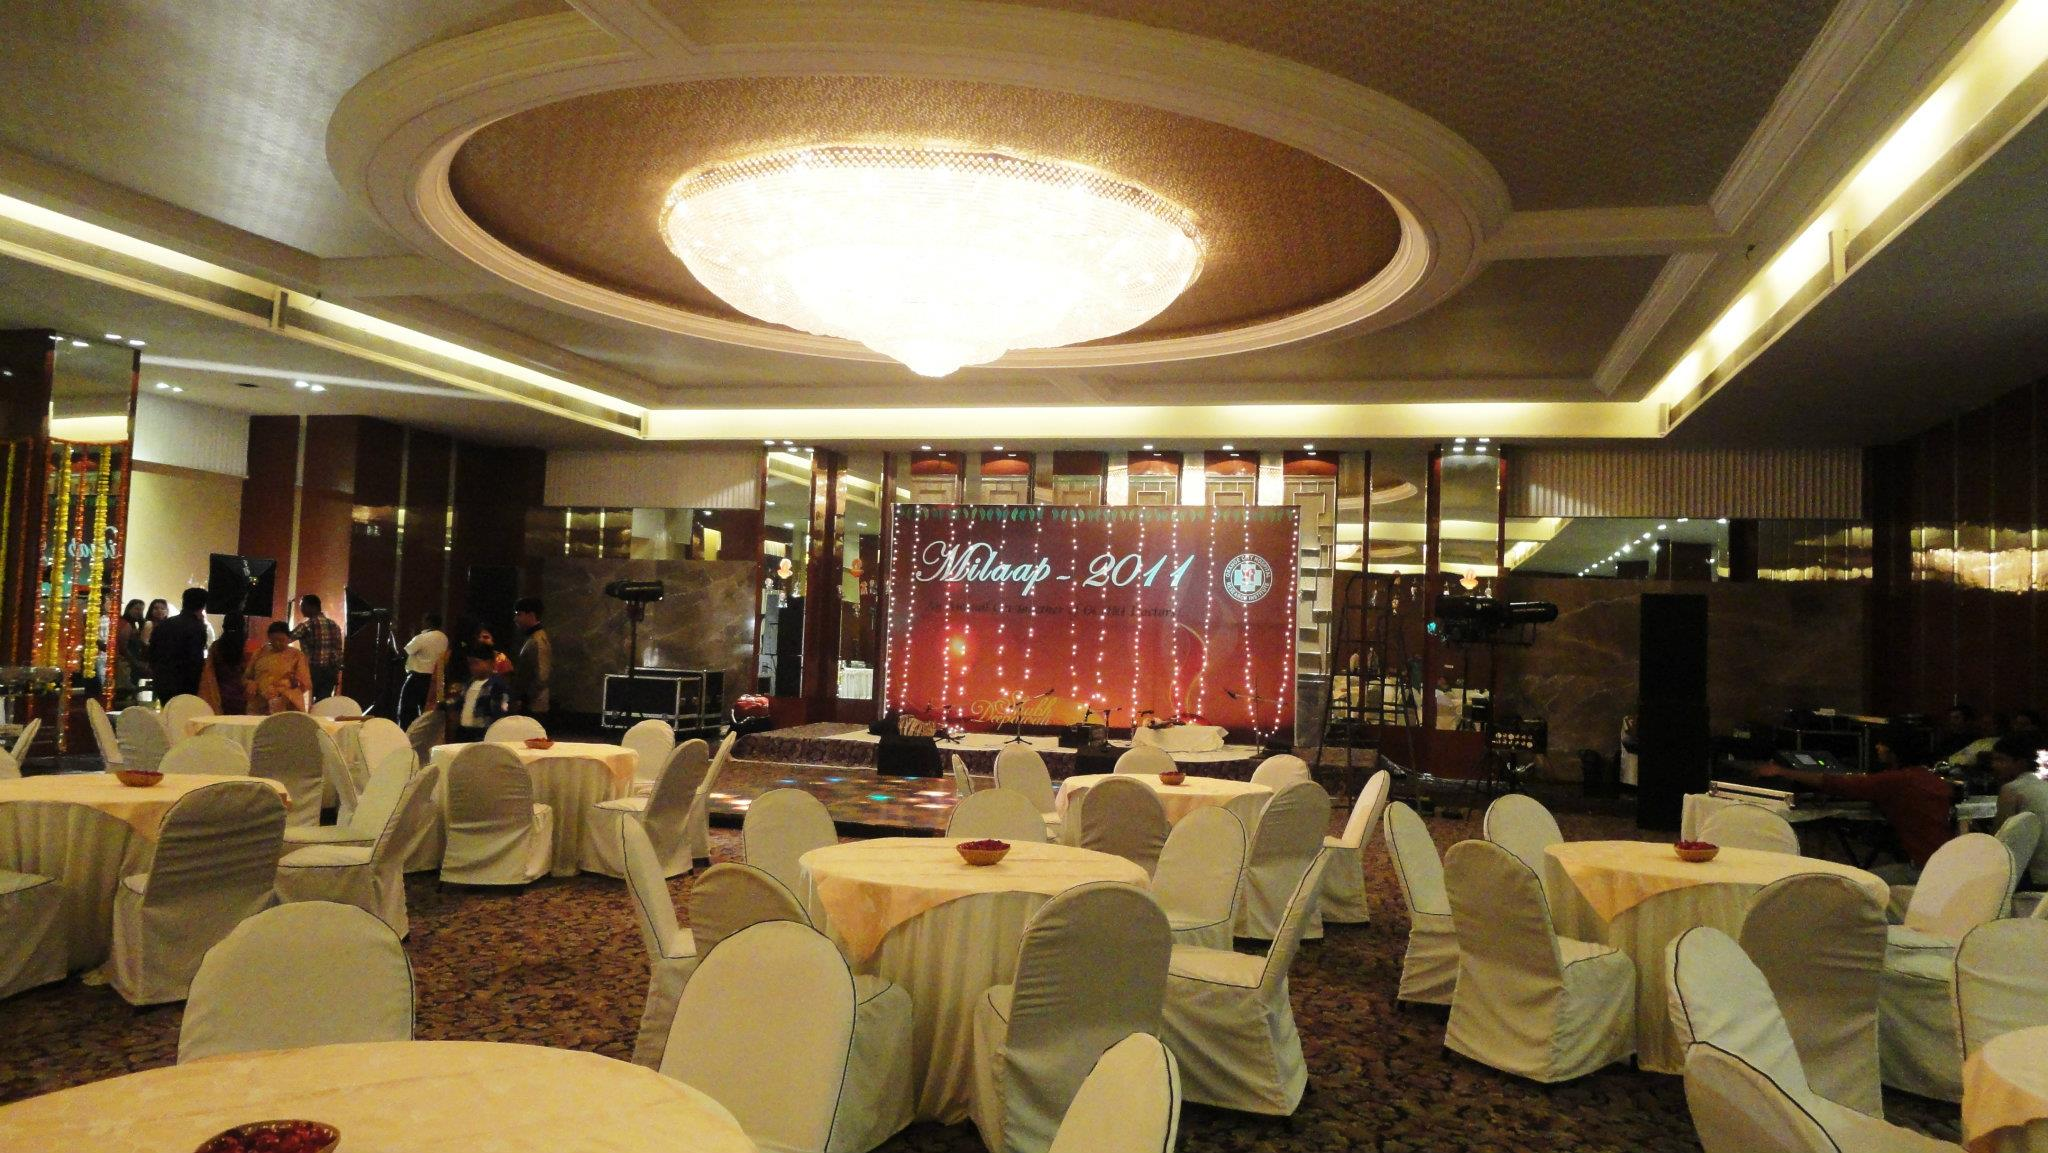 Set up for Ghazal night followed by DJ- New Banquet hall of hotel Centre Point, Ramdaspeth, Nagpur.